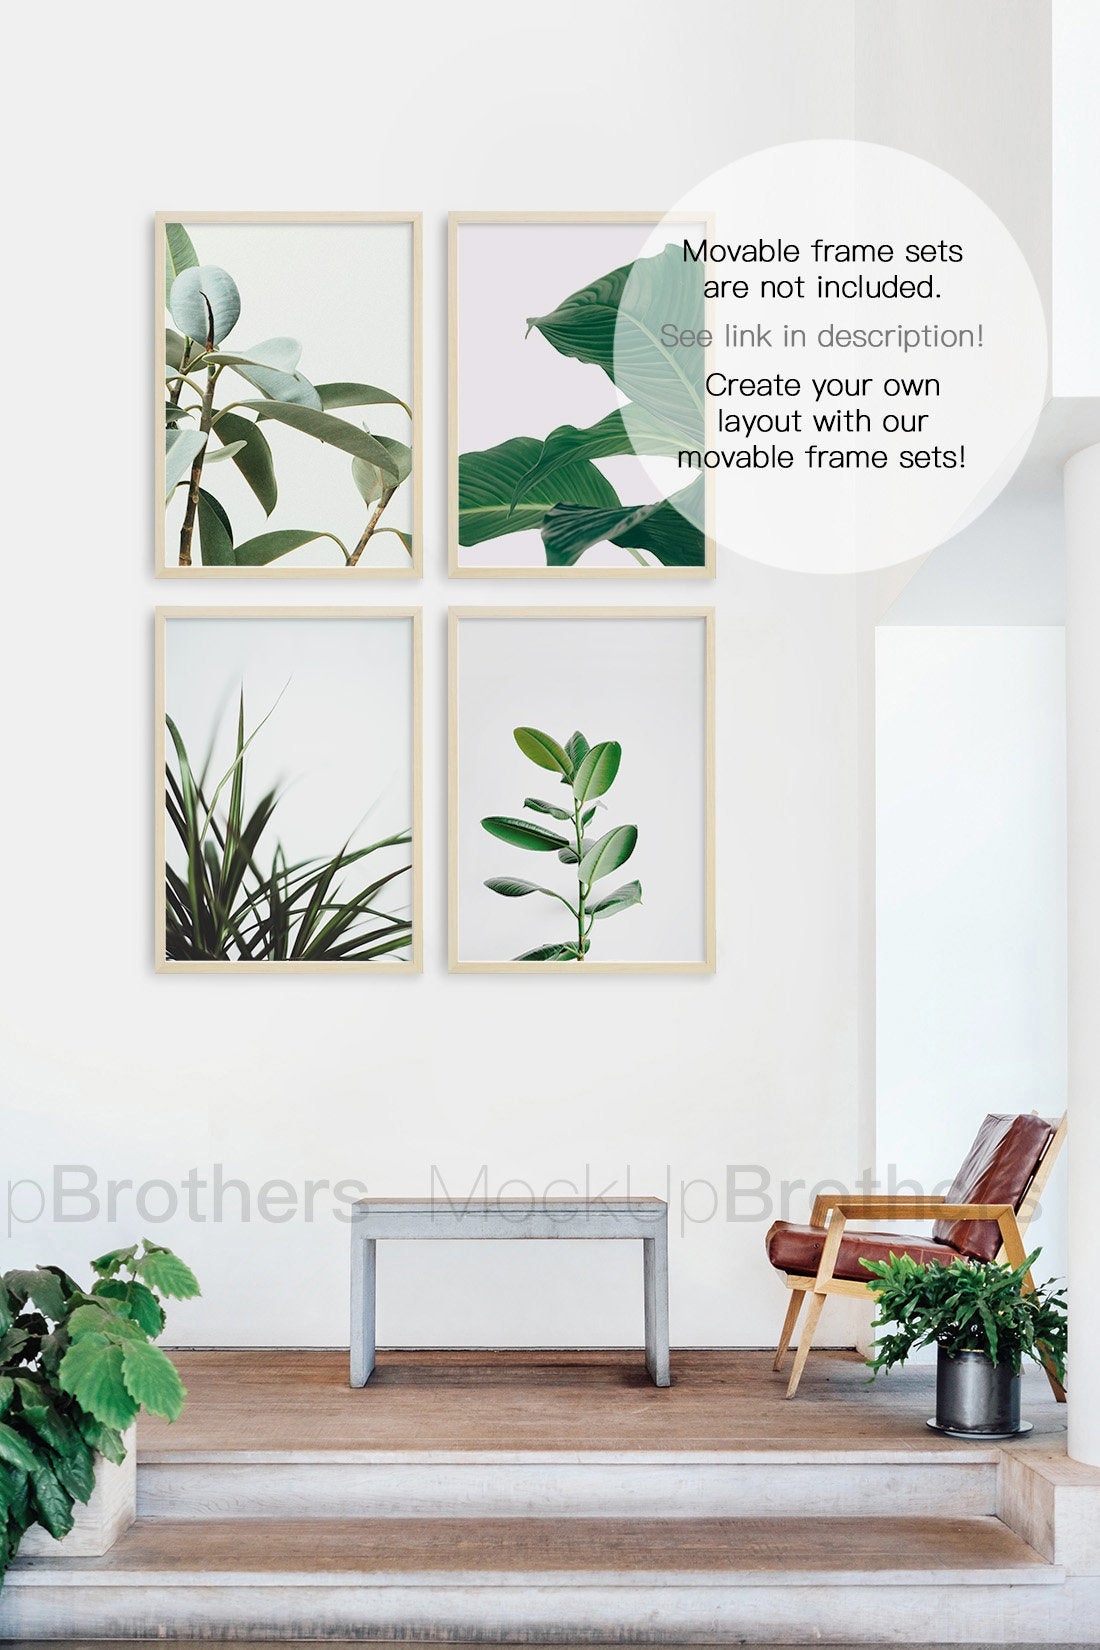 Wall art mockup by MockupBrothers